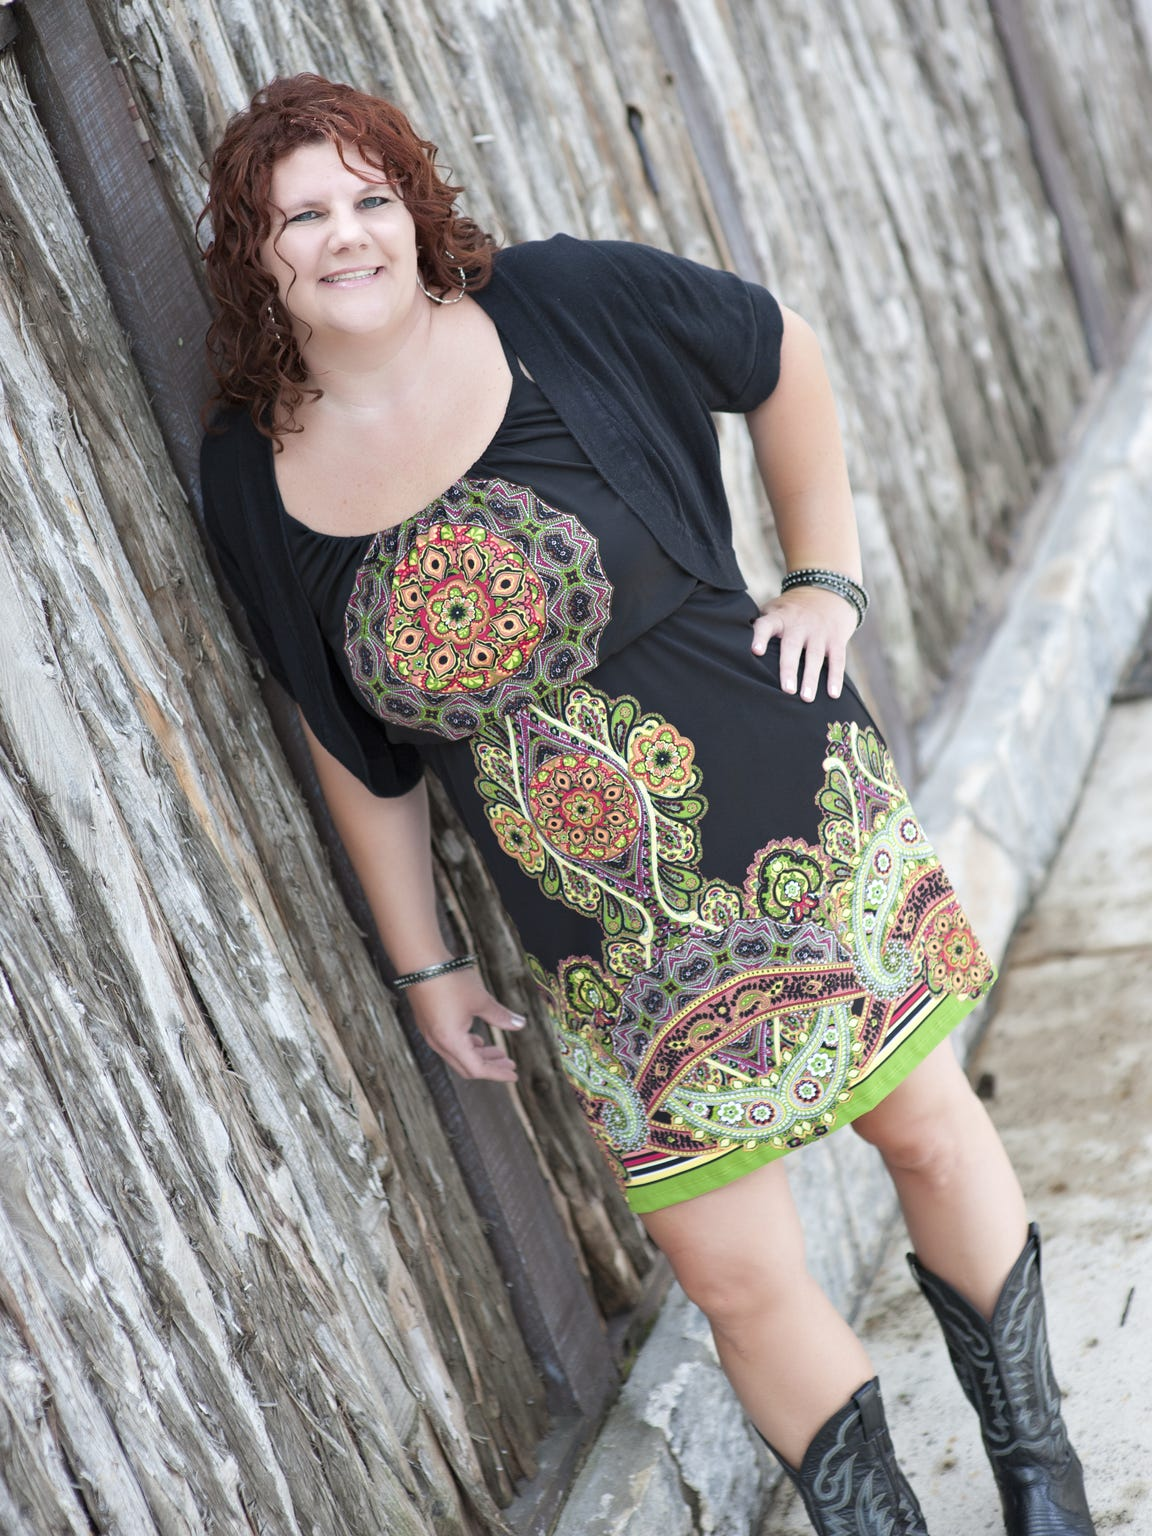 Gina Frenzel, a private investigator from Kerrville,